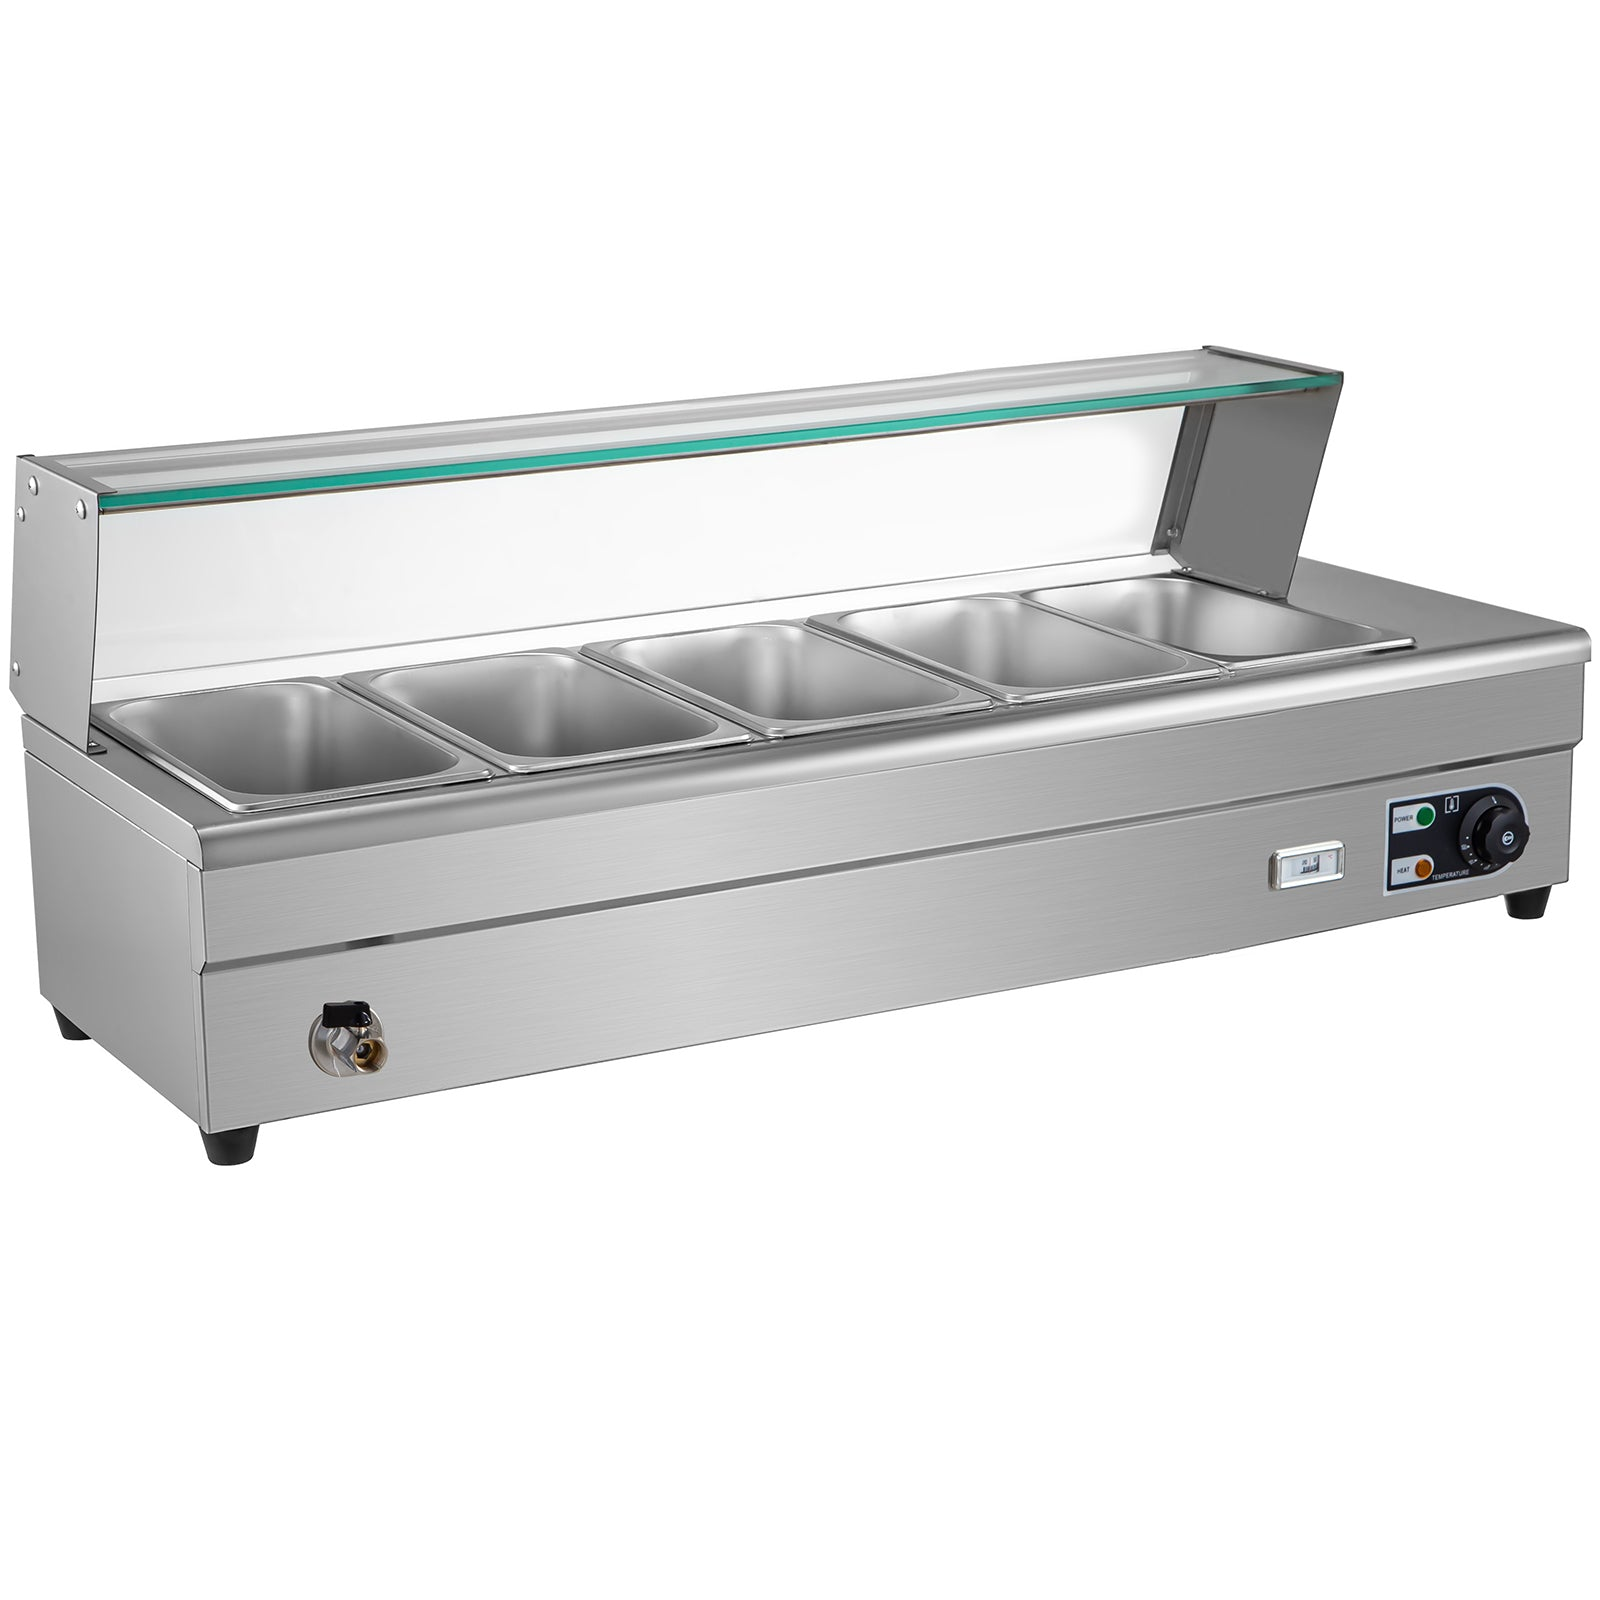 Bain Marie Food Warmer, Commercial Food Steam Table, 5 Pans, With Glass Shield